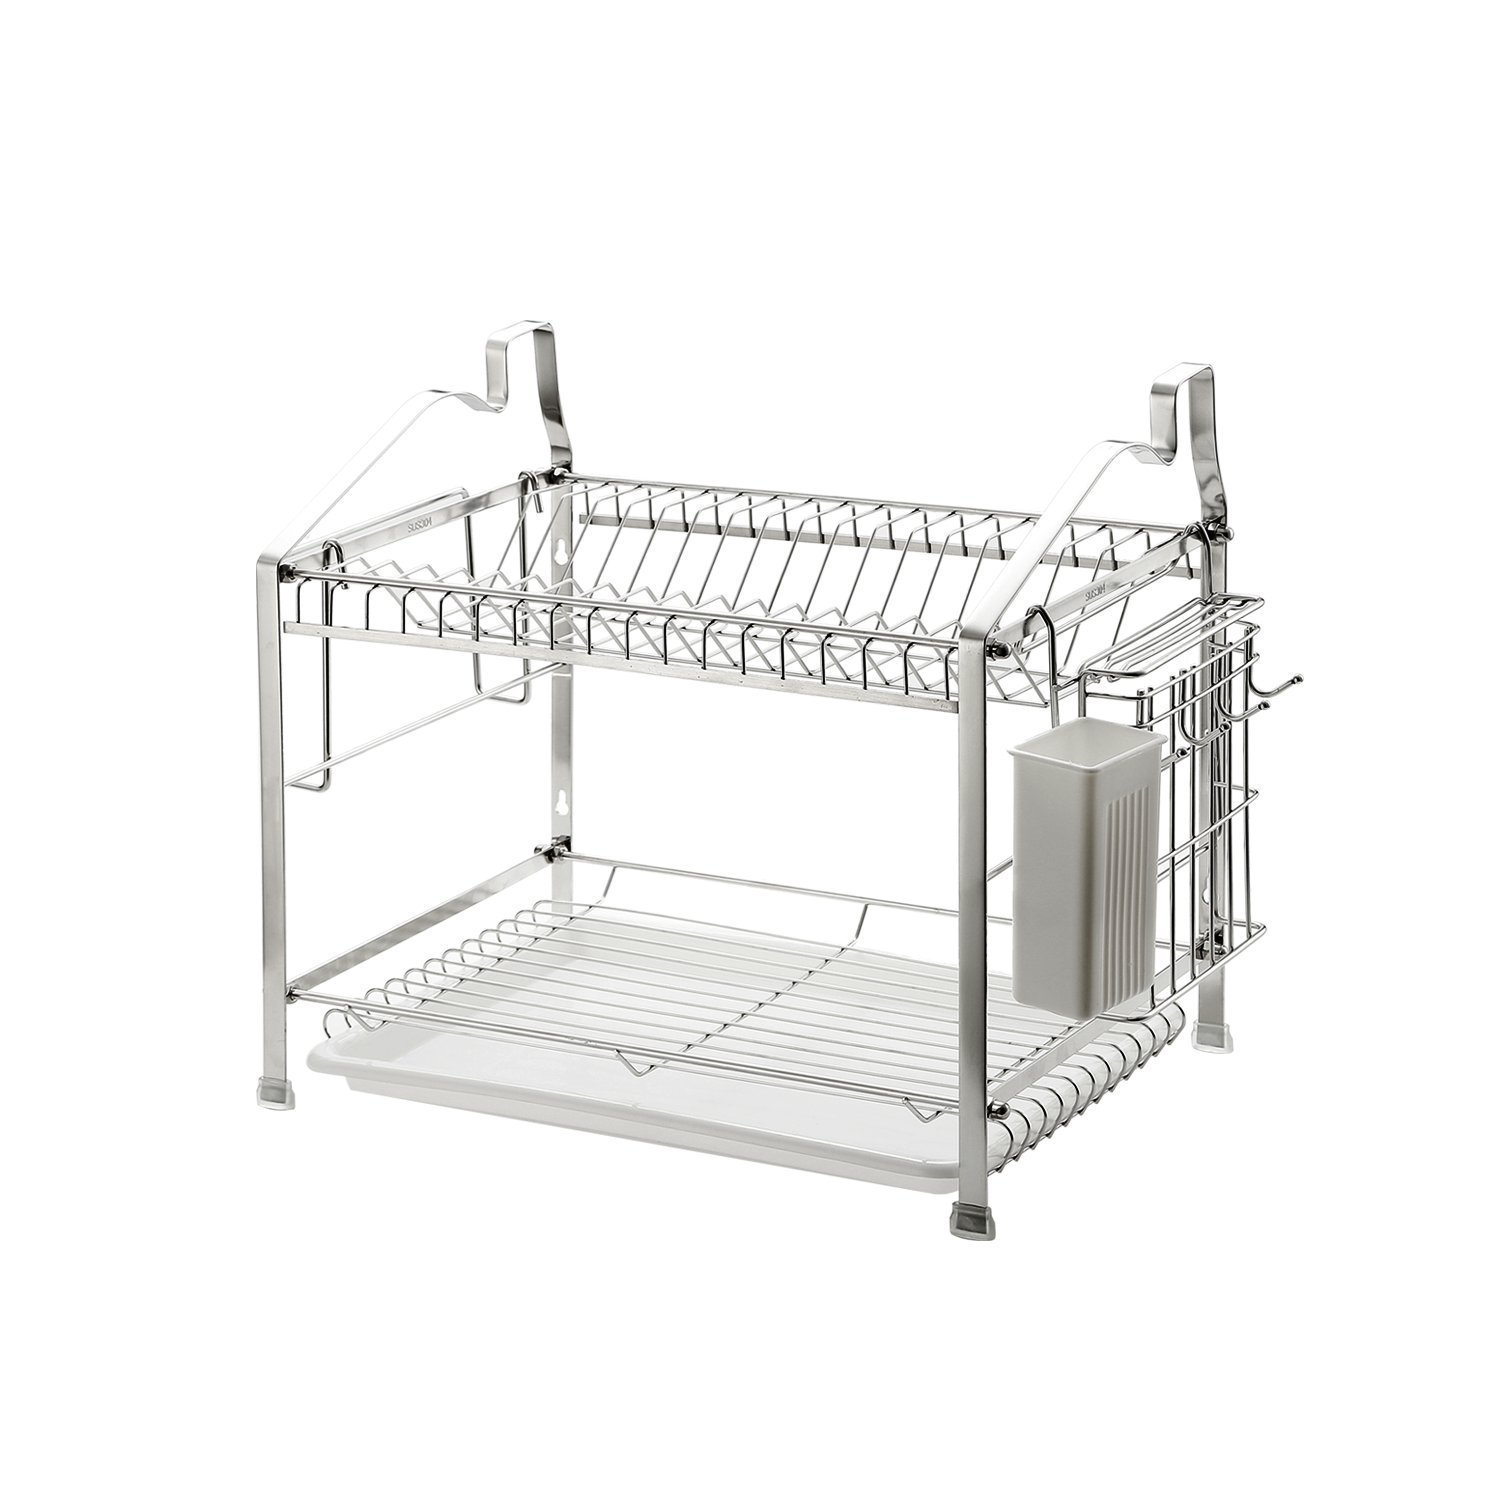 Dish Drying Rack Dish Drainer Kitchen Storage Organization, Stainless Steel, GEYUEYA Home (2-Tier)